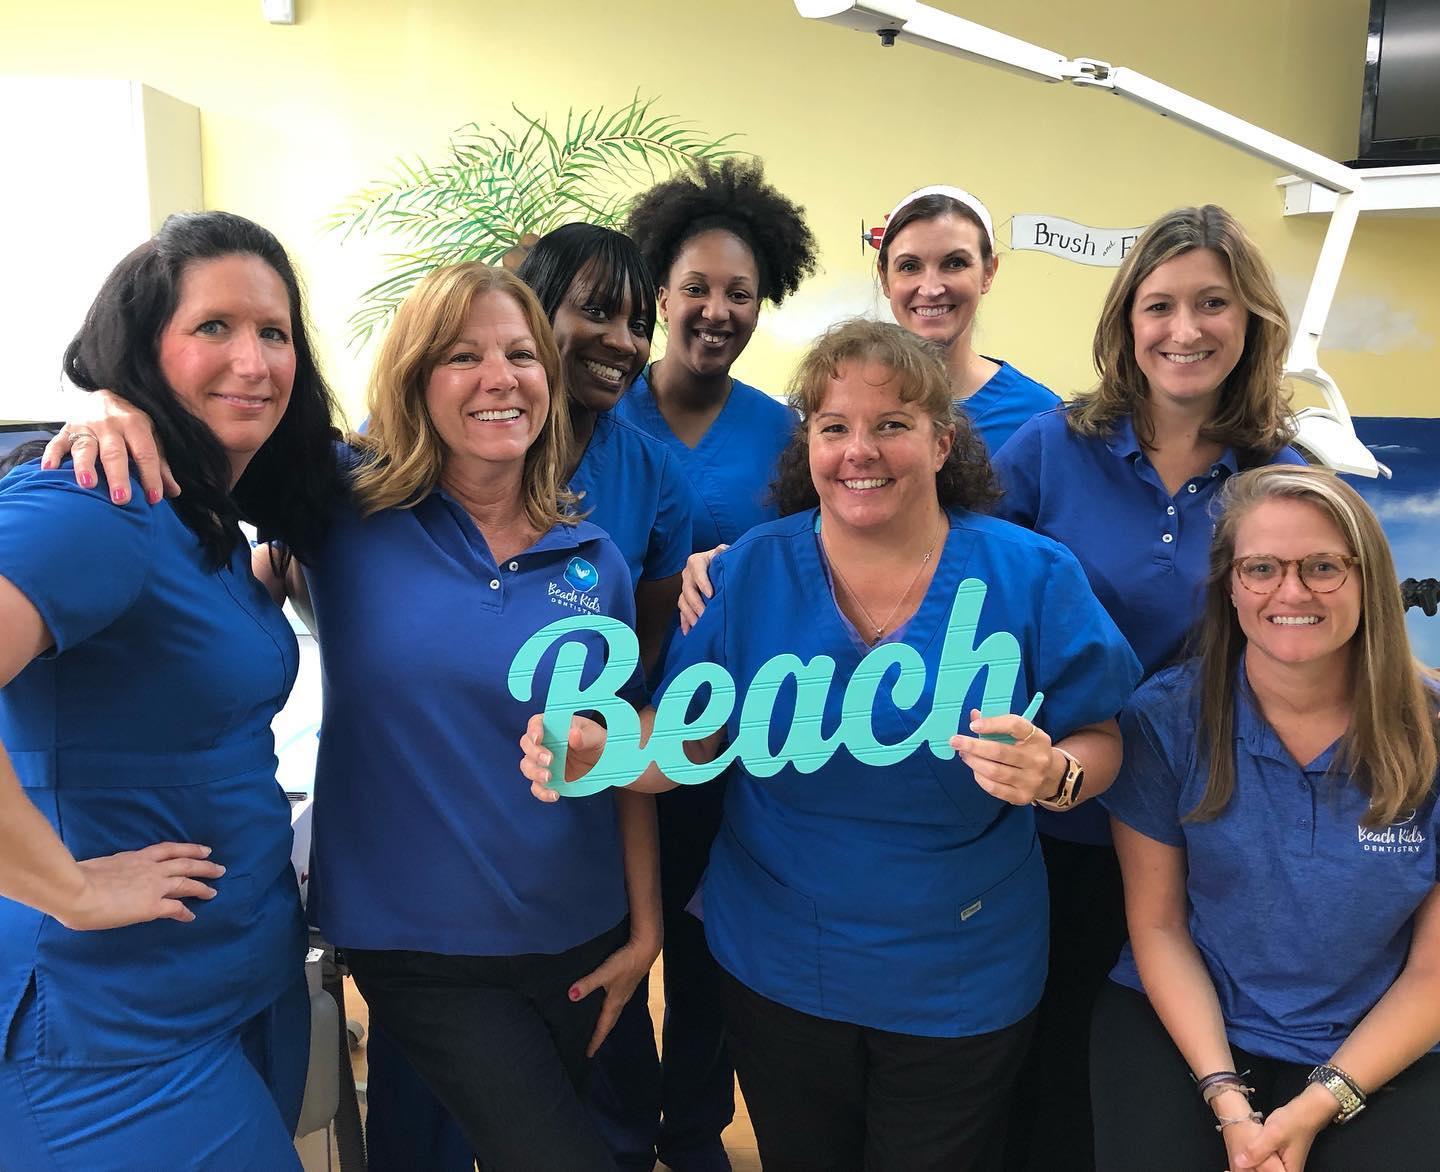 About Beach Kids Dentistry